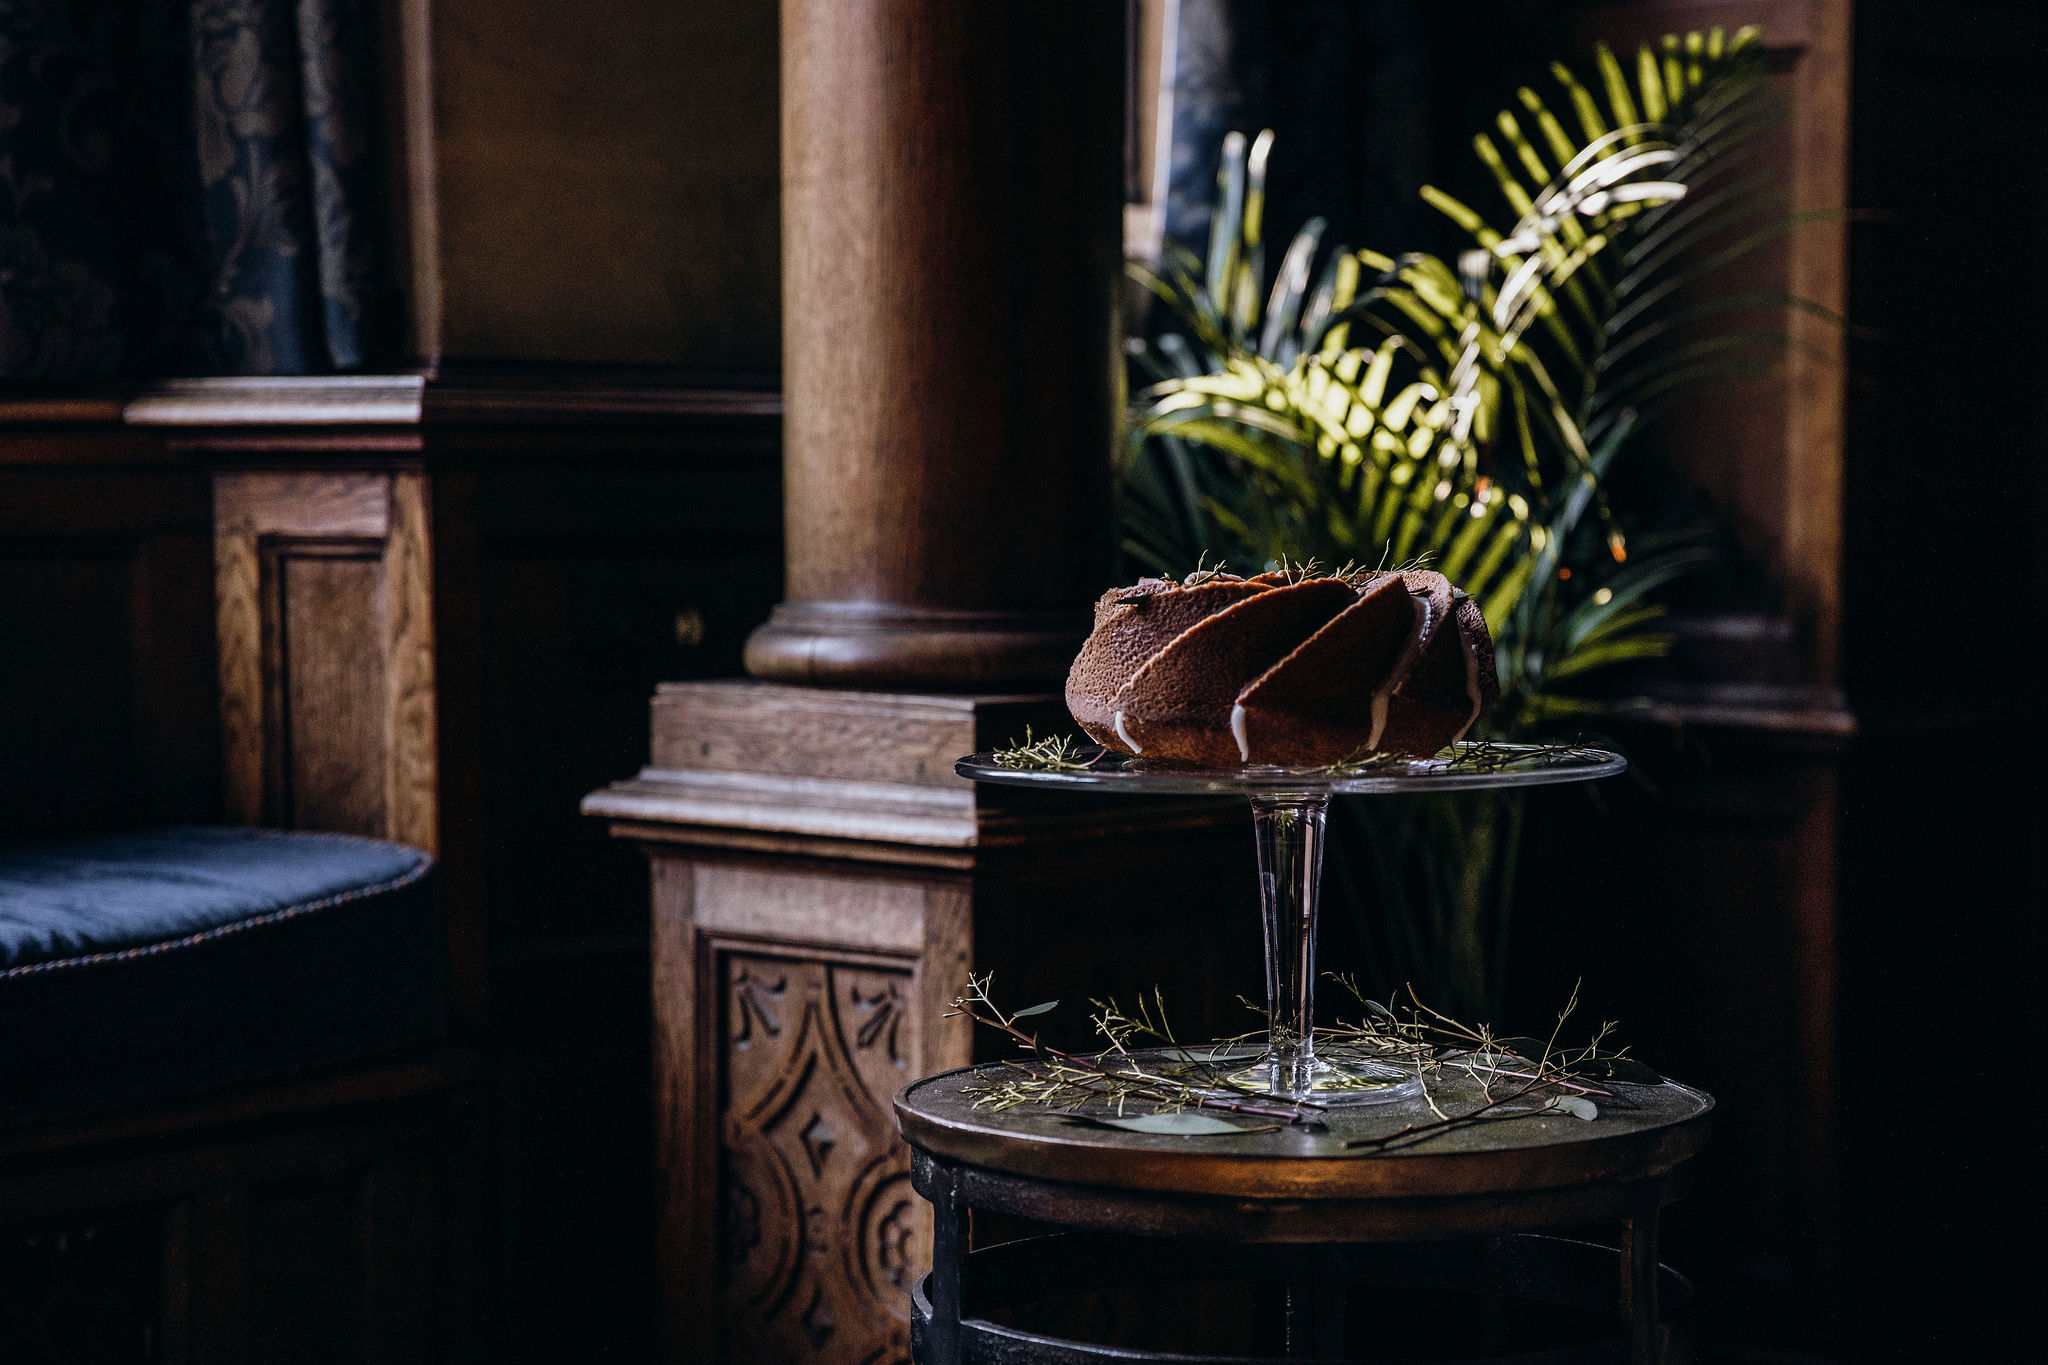 Cake 2% - Captured by Thyme Lane Photography